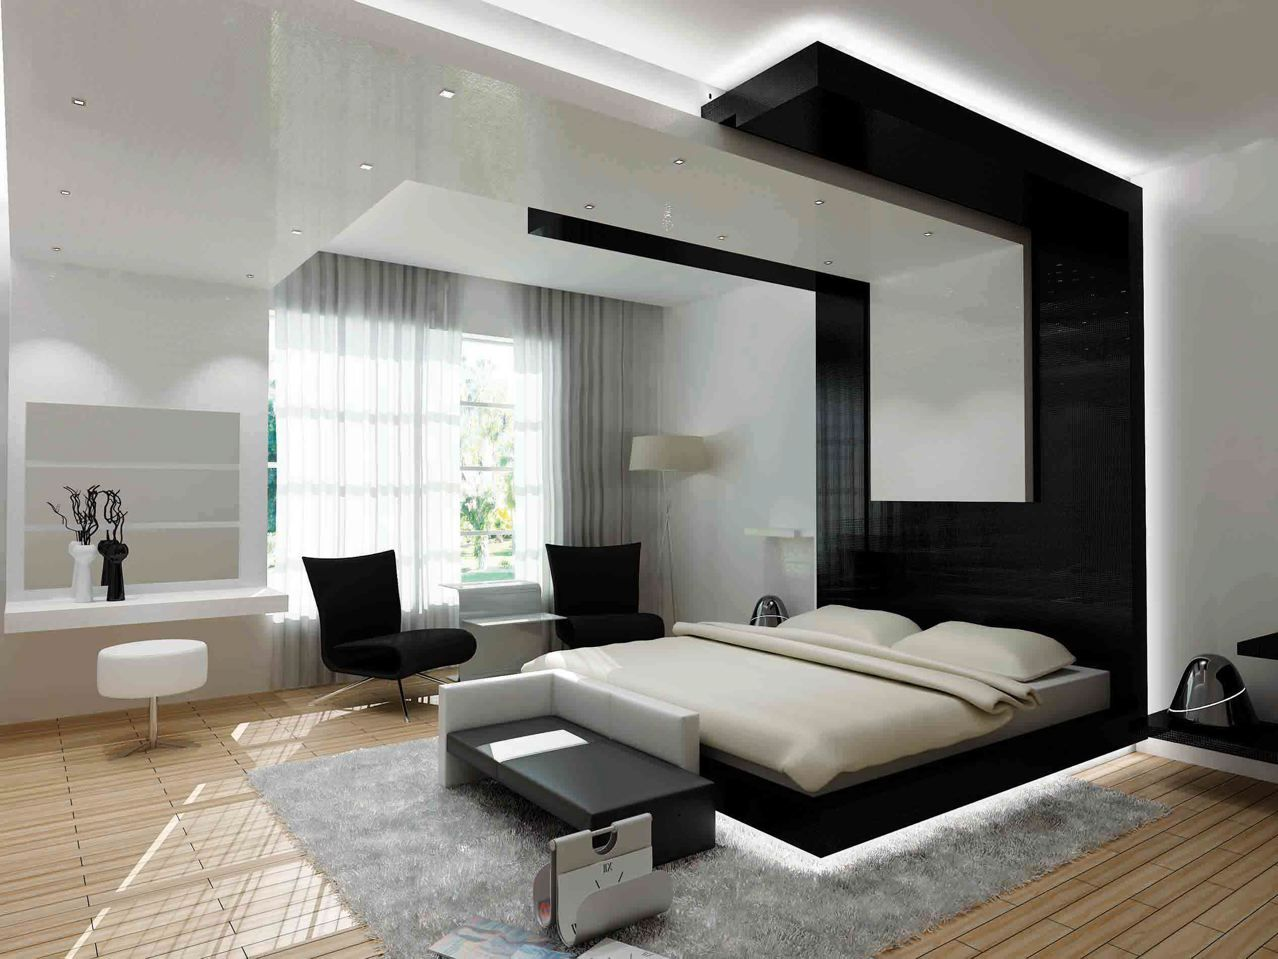 Bedroom wall ideas modern - Contemporary Bedroom Ideas Google Search